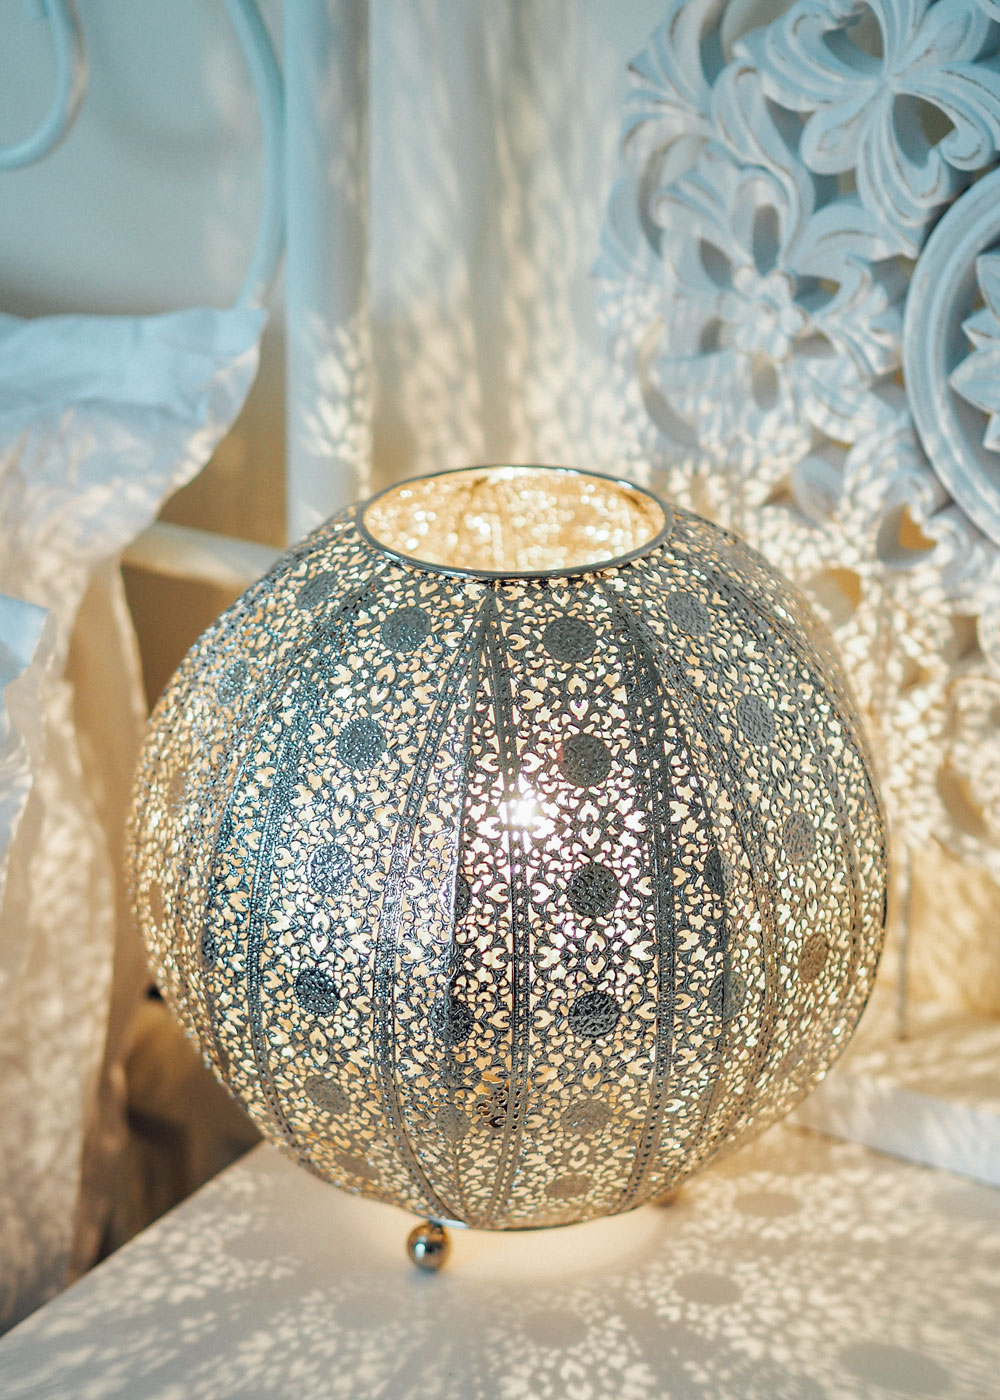 Today I'm sharing how to add moroccan interior design inspiration into your own home, in partnership with First Choice Lighting.